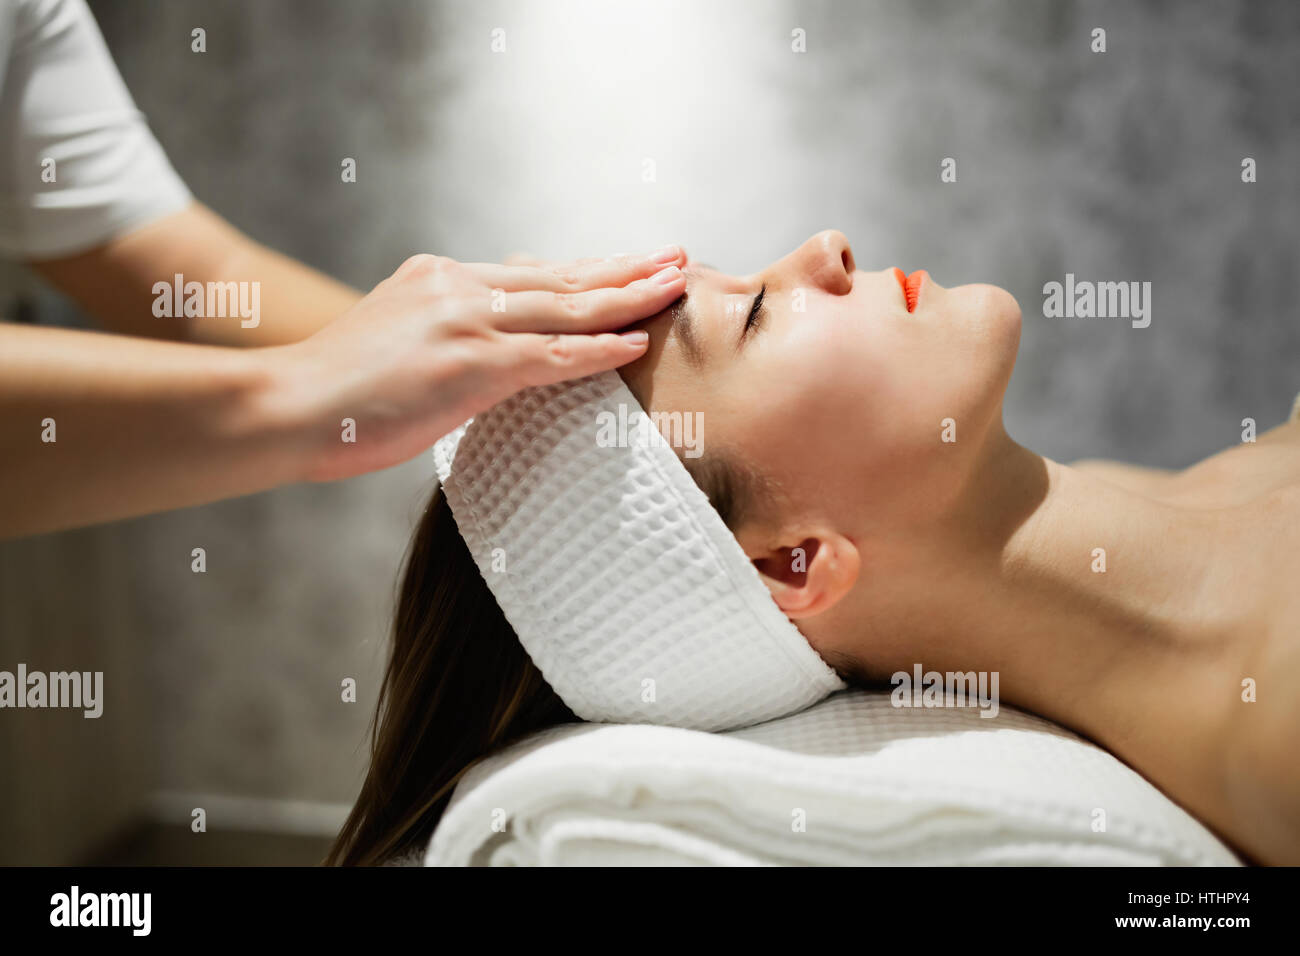 Masseuse massaging female who is relaxing at salon - Stock Image